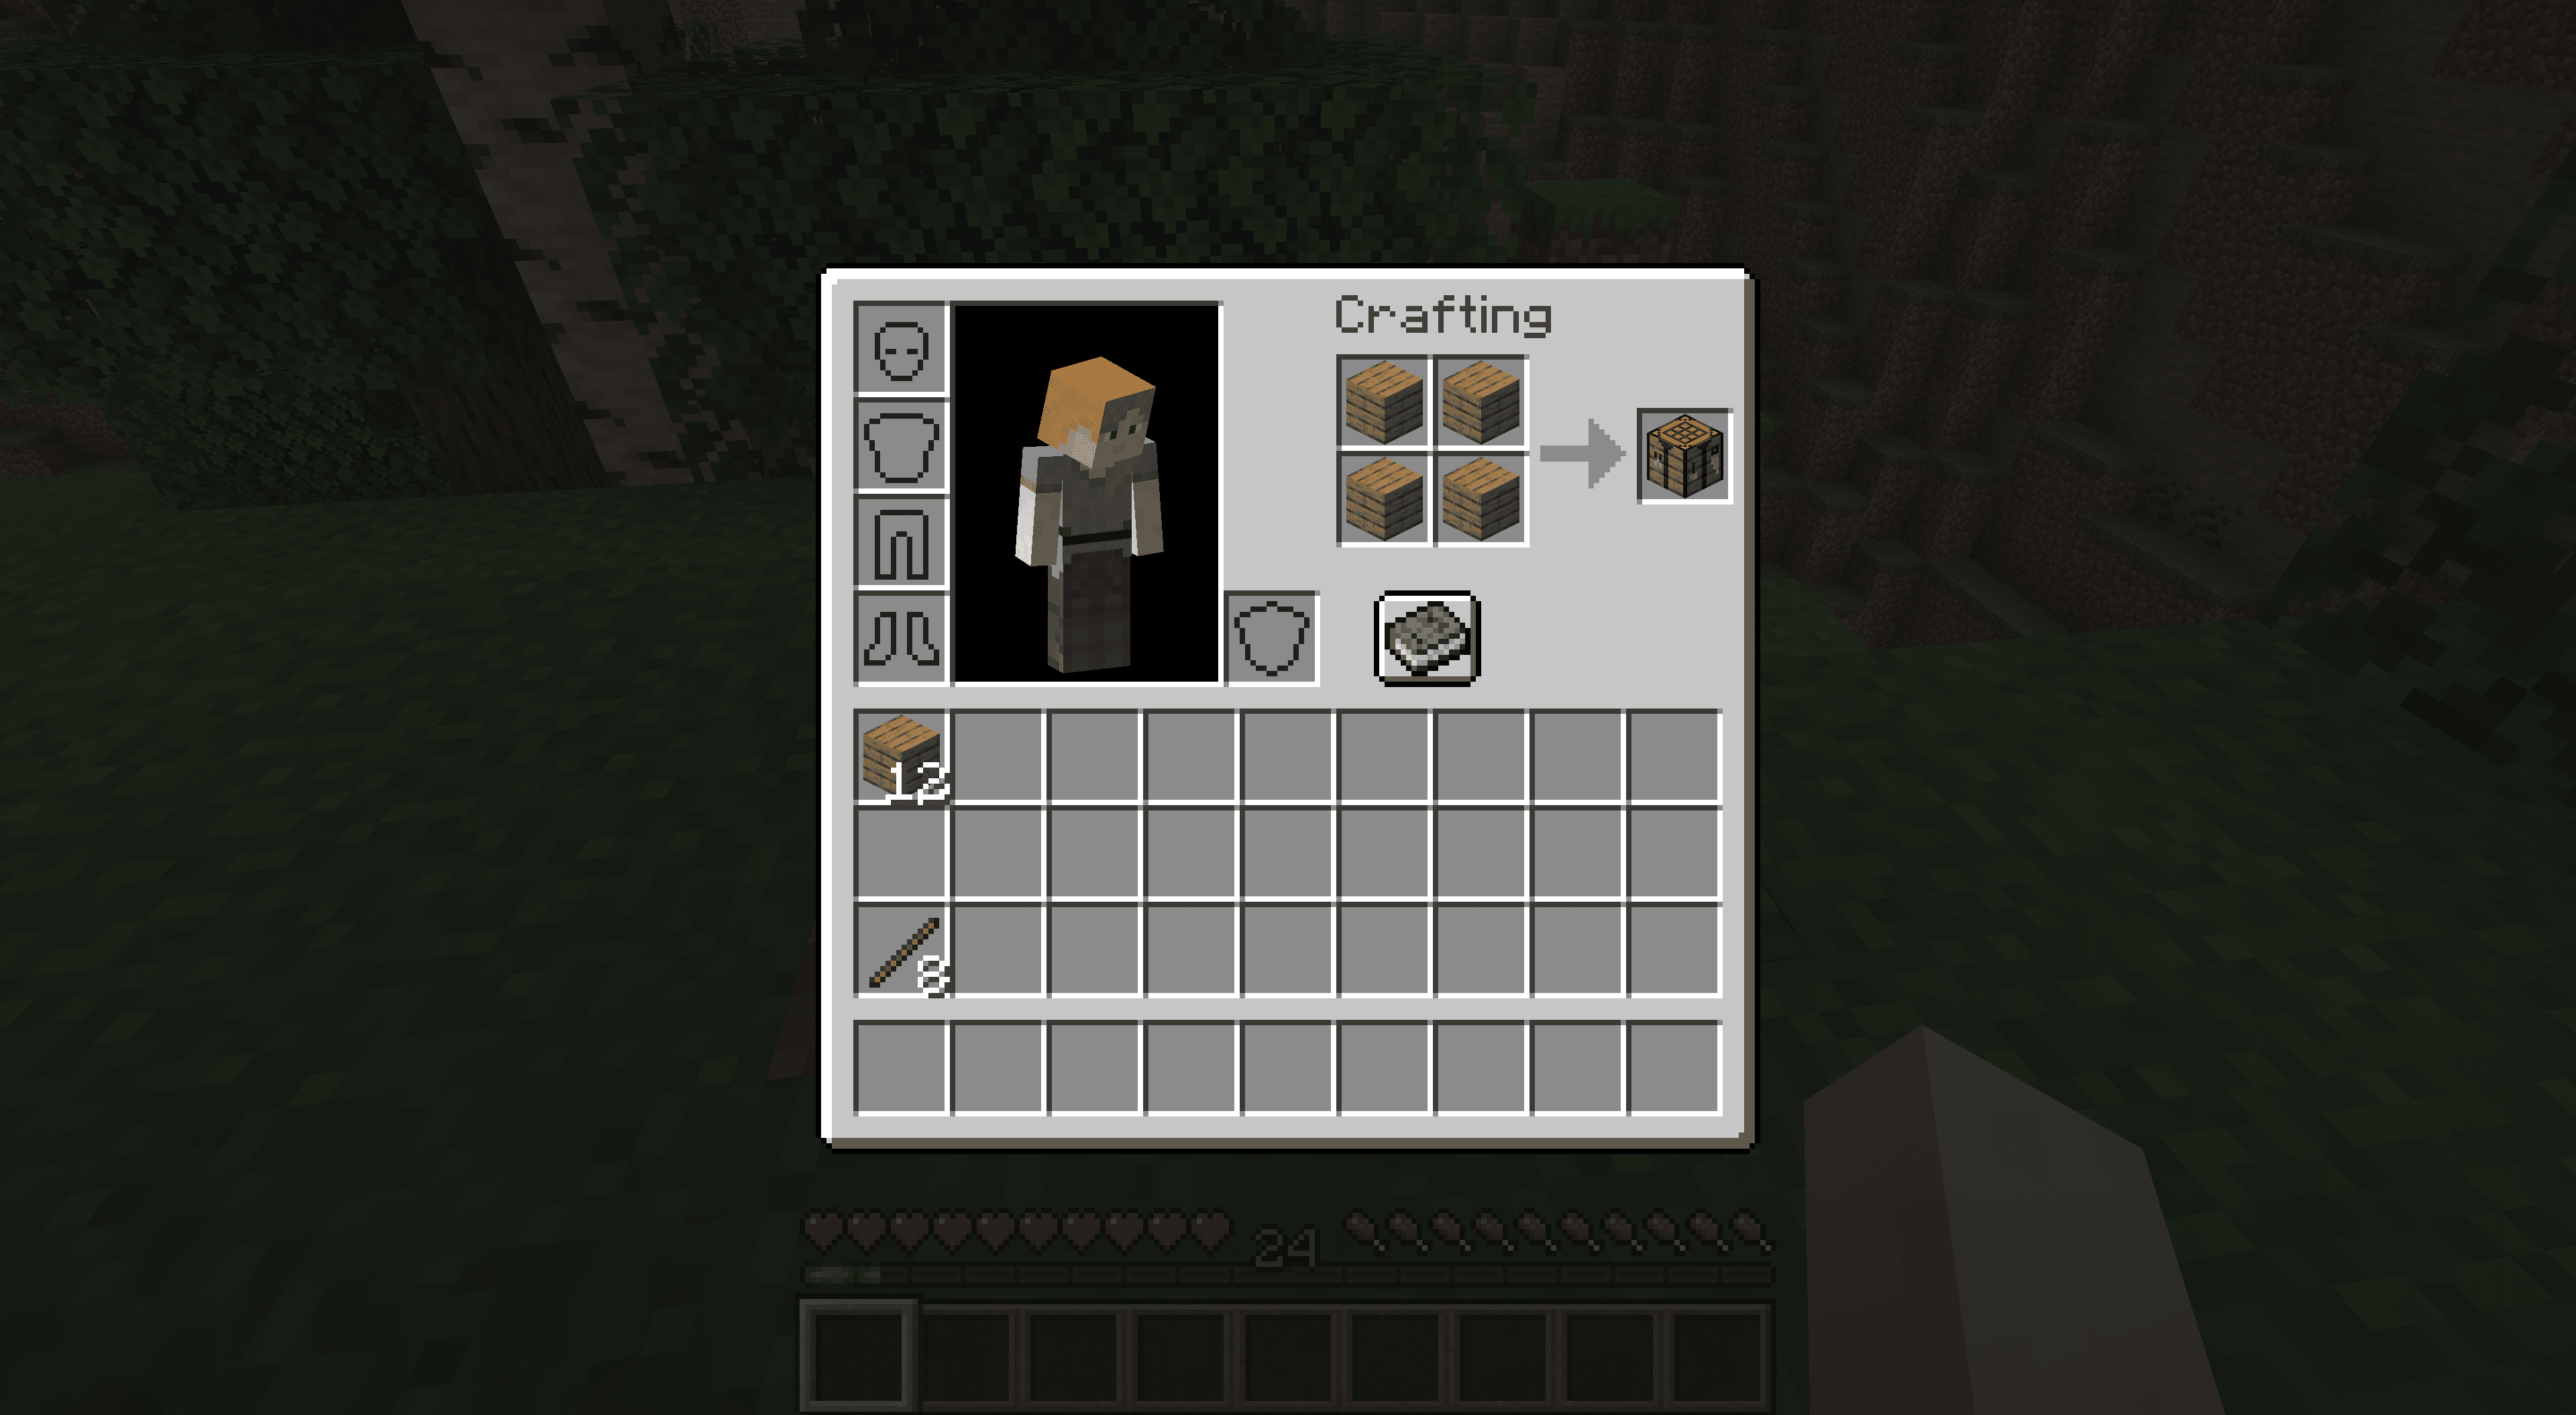 Making a crafting table in Minecraft.